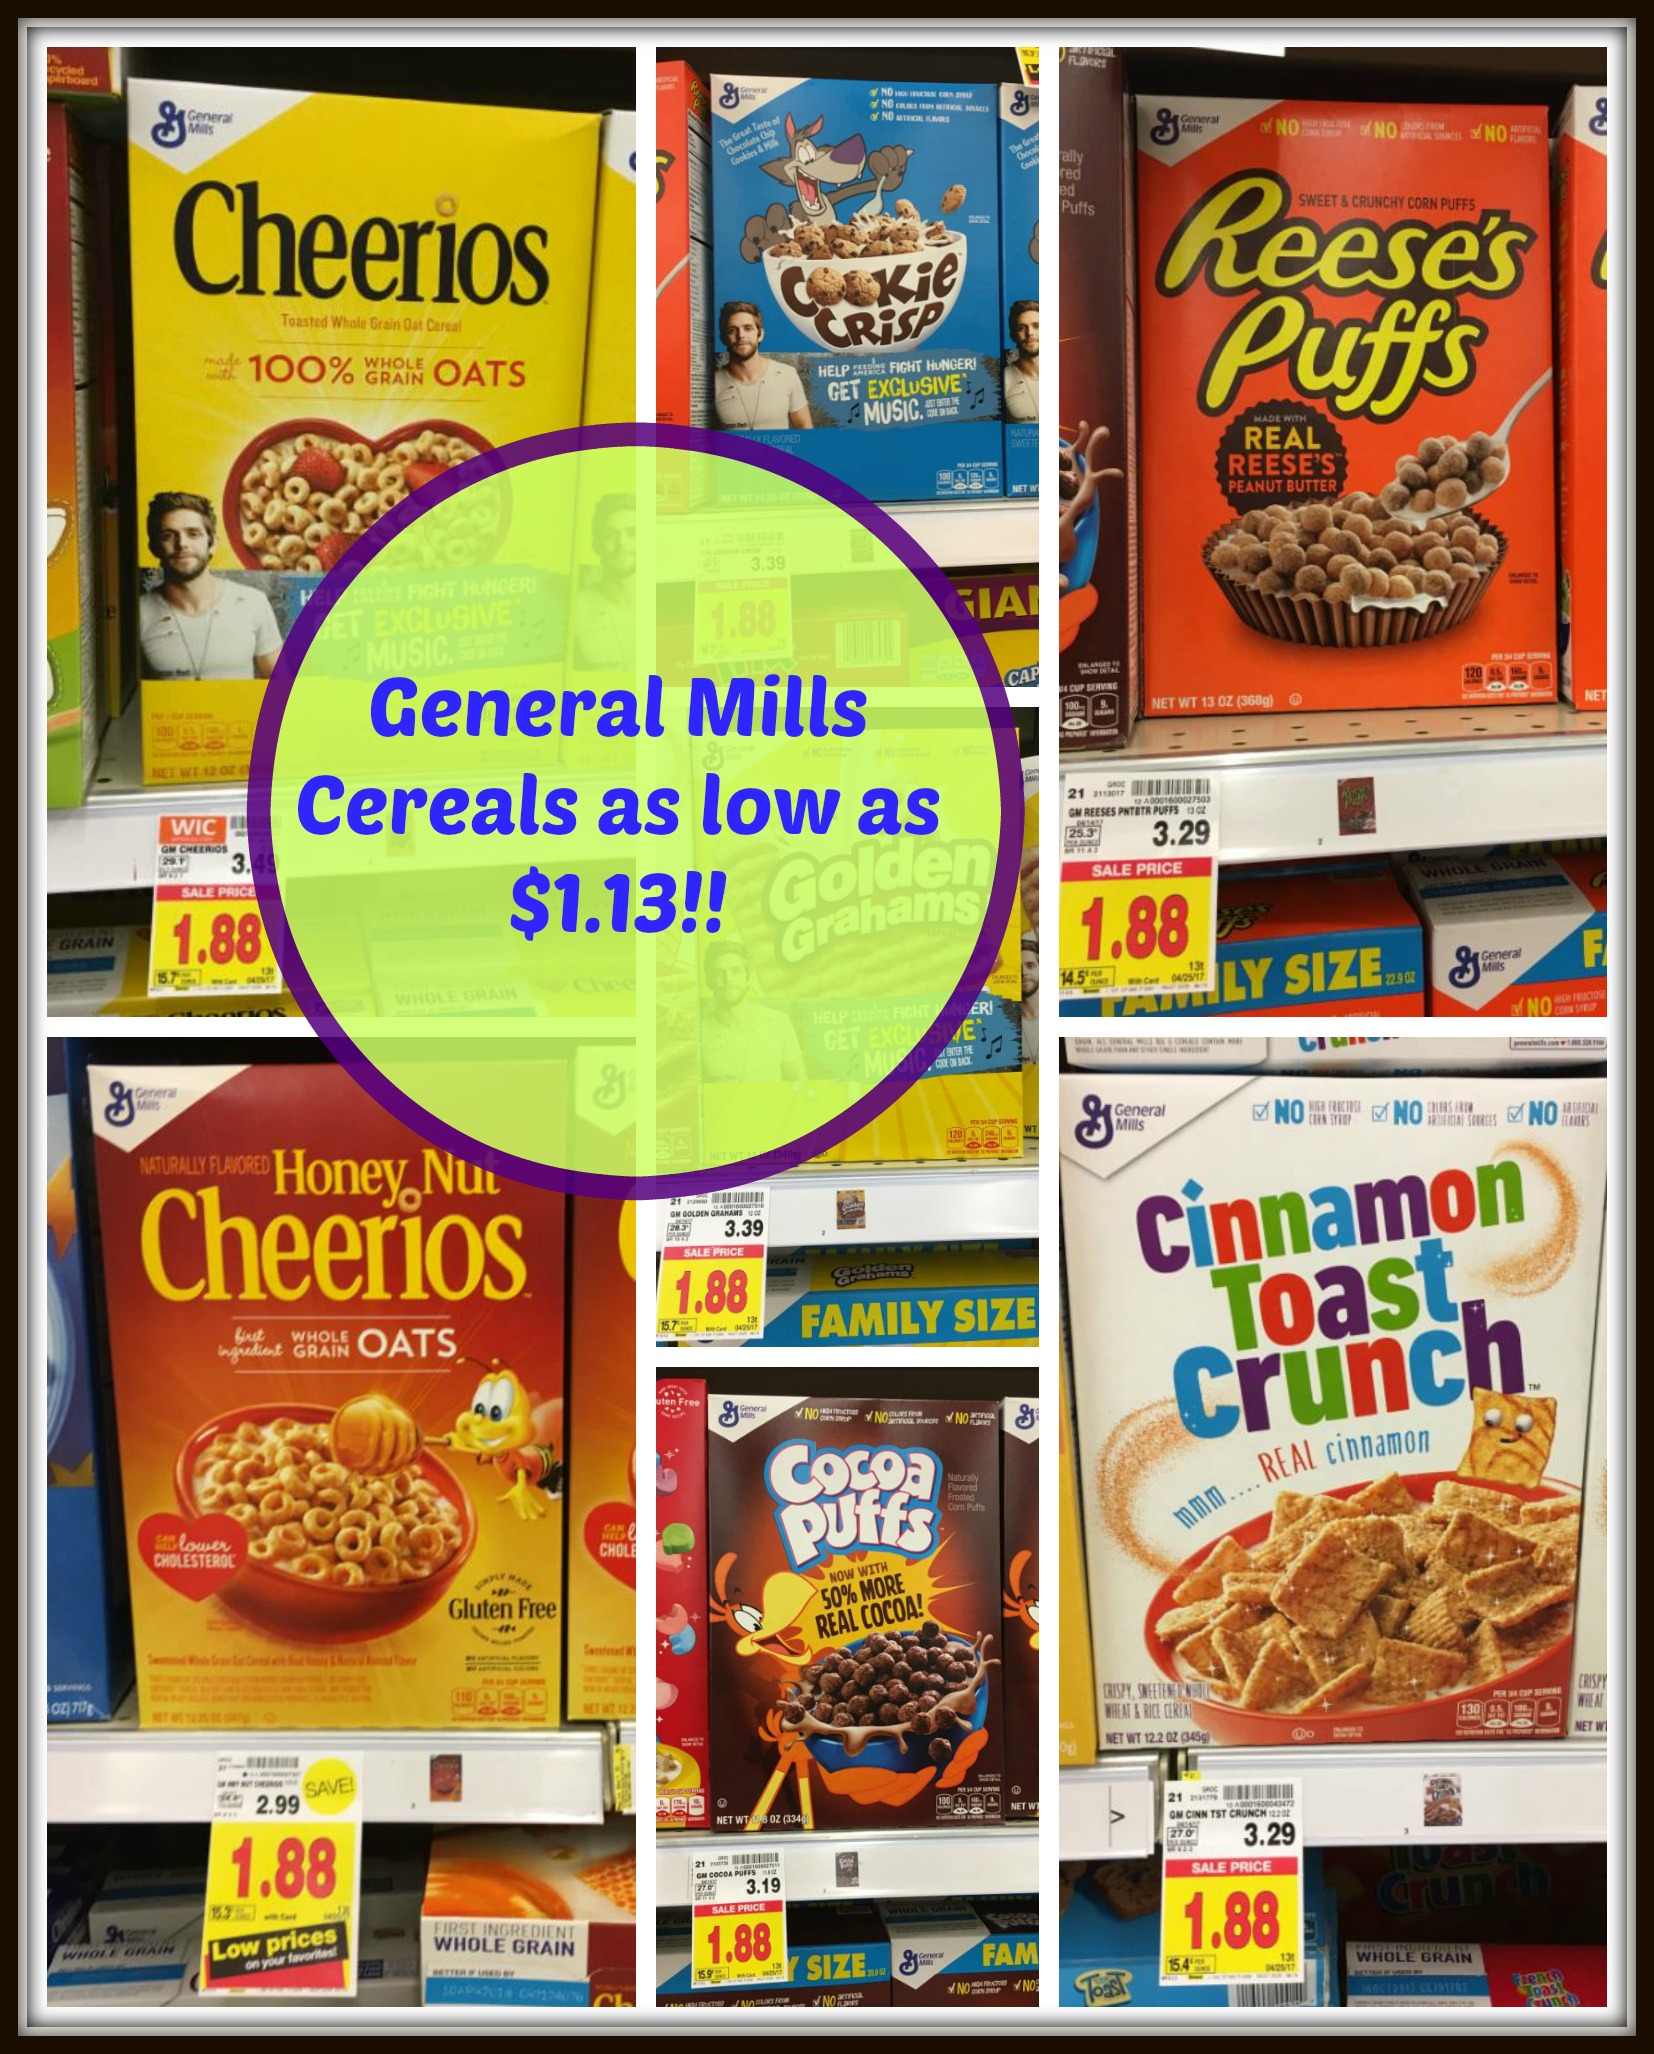 General Mills Cereals As Low As $1.13 At Kroger!!